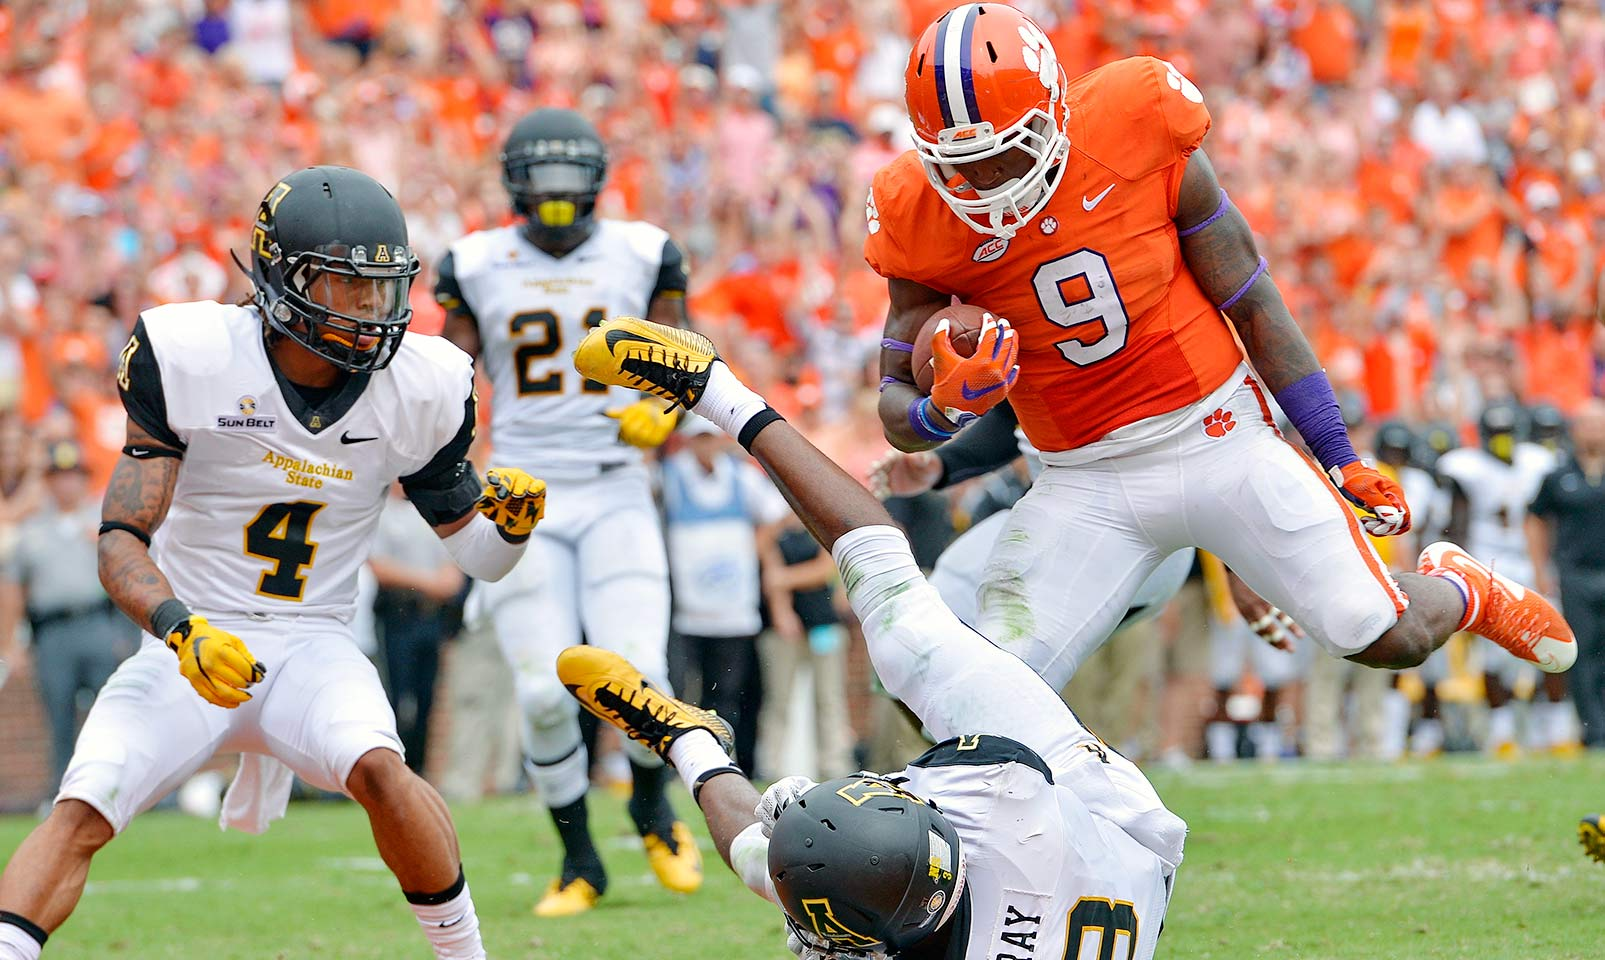 Clemson 41, Appalachian State 10: The Tigers continued to roll through their nonconference schedule with a beatdown of the Mountaineers.